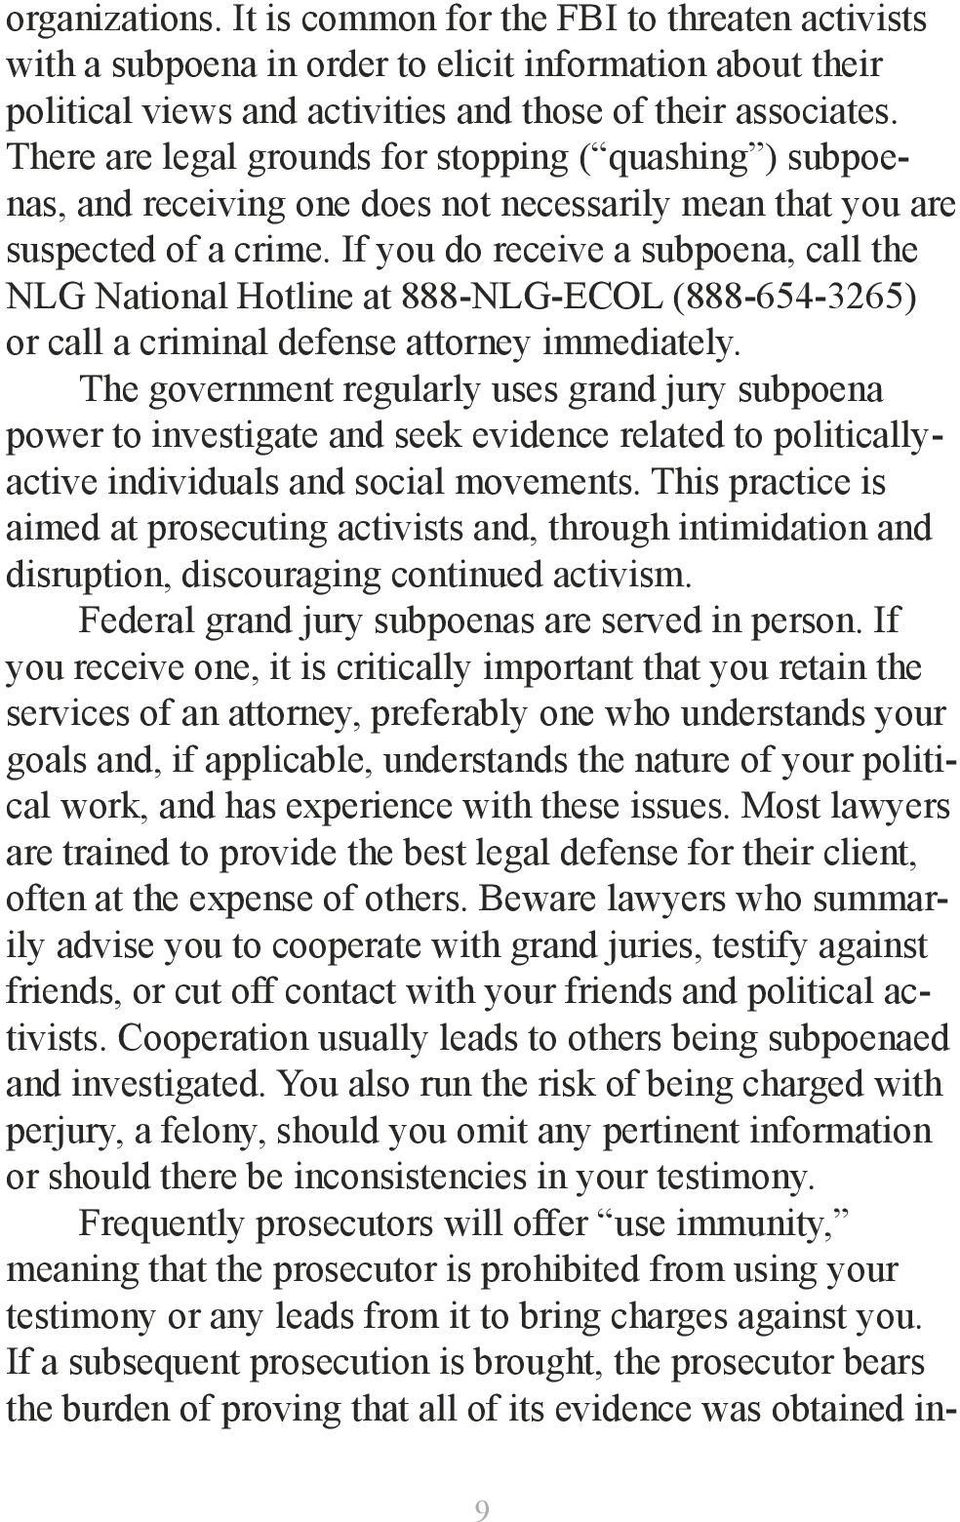 If you do receive a subpoena, call the NLG National Hotline at 888-NLG-ECOL (888-654-3265) or call a criminal defense attorney immediately.